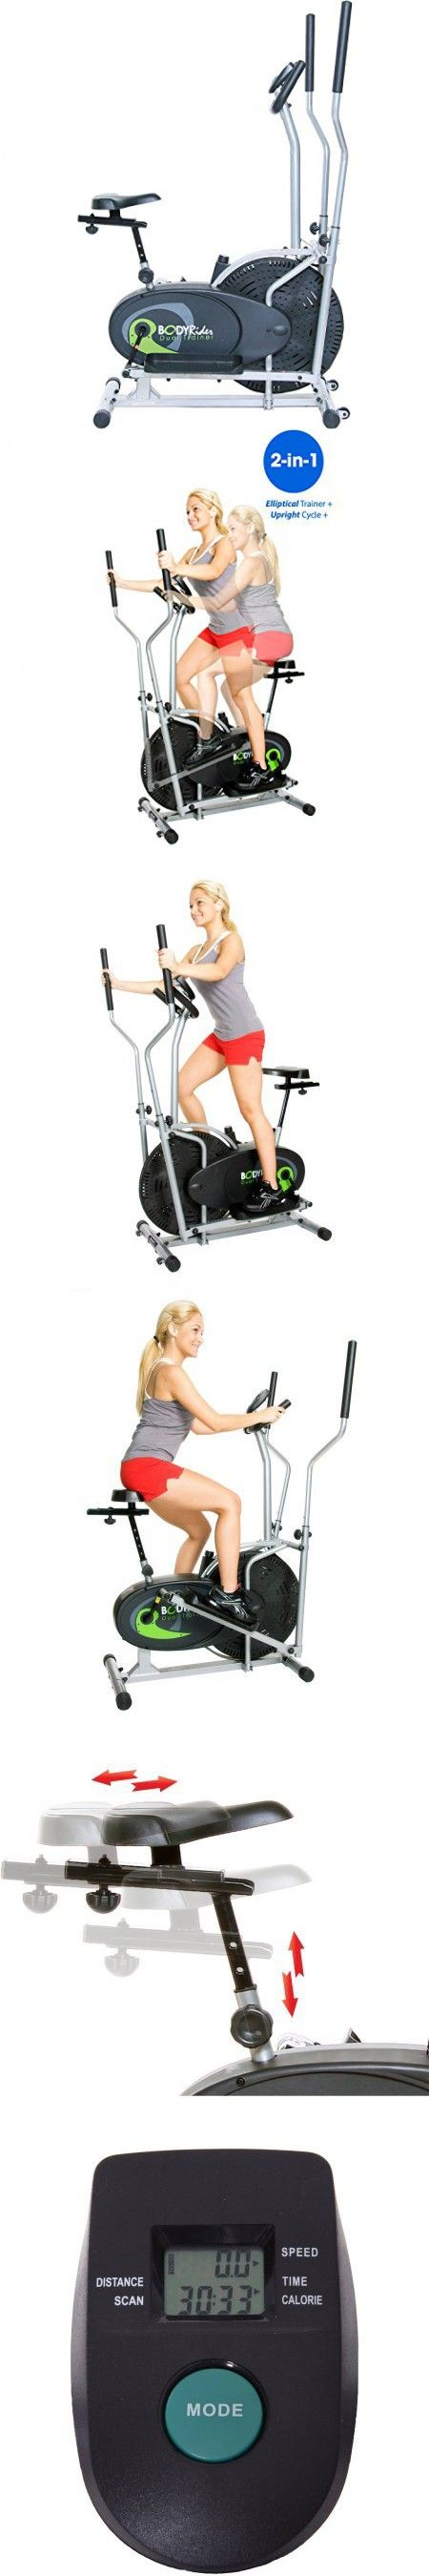 Dual Cardio Elliptical Trainer Fitness Exercise Cardio Workout Training Home Gym Equipment Comfortable, No-Impact 2 in 1 Fitness Machine Settings Elliptical Trainer Exercise Bike Use Electric Console